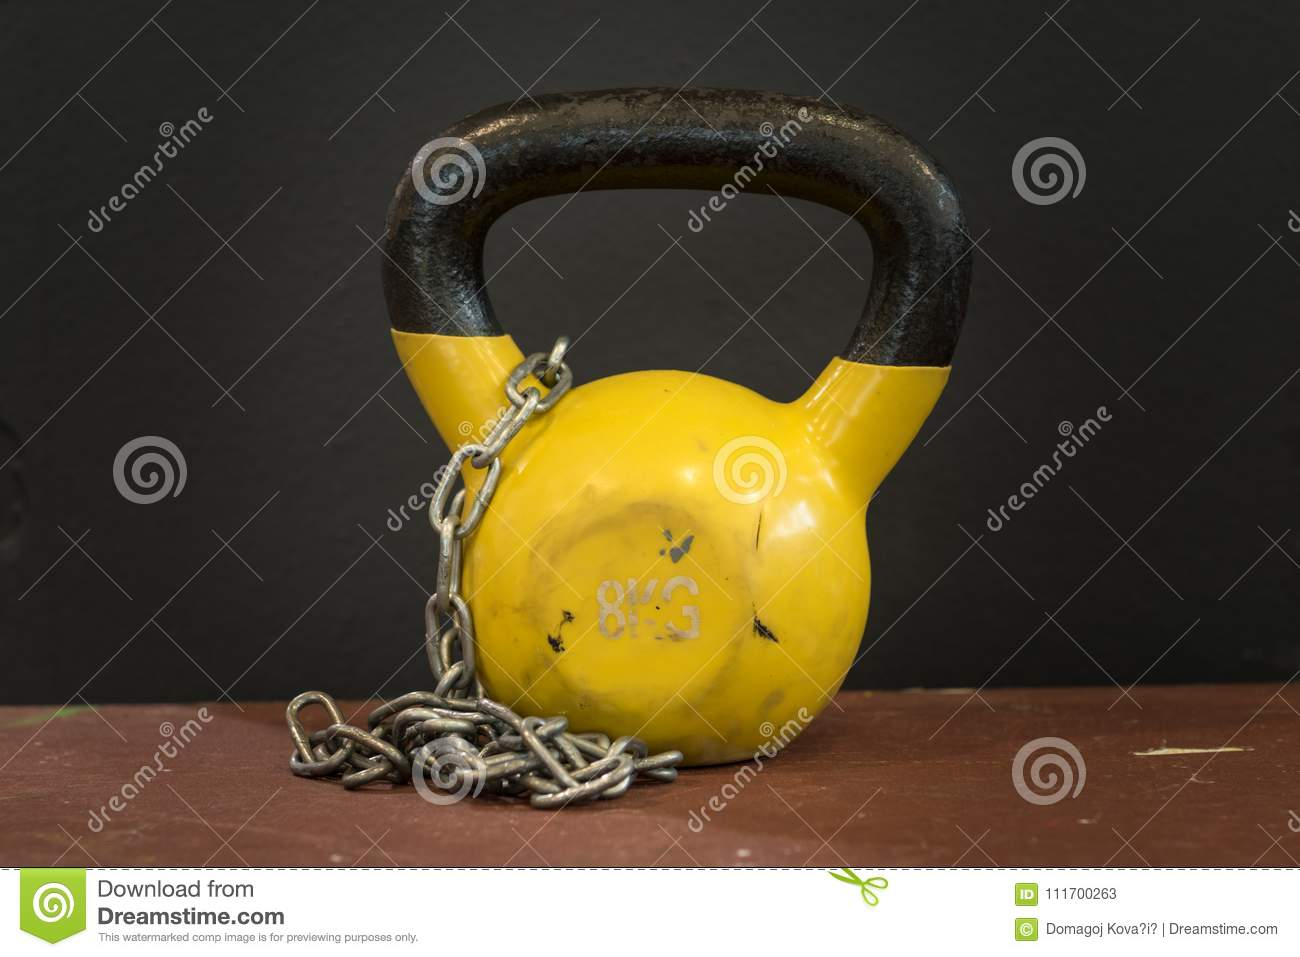 Small yellow eight kilograms heavy worn out kettlebell with silver chain against black background. Gym and fitness equipment